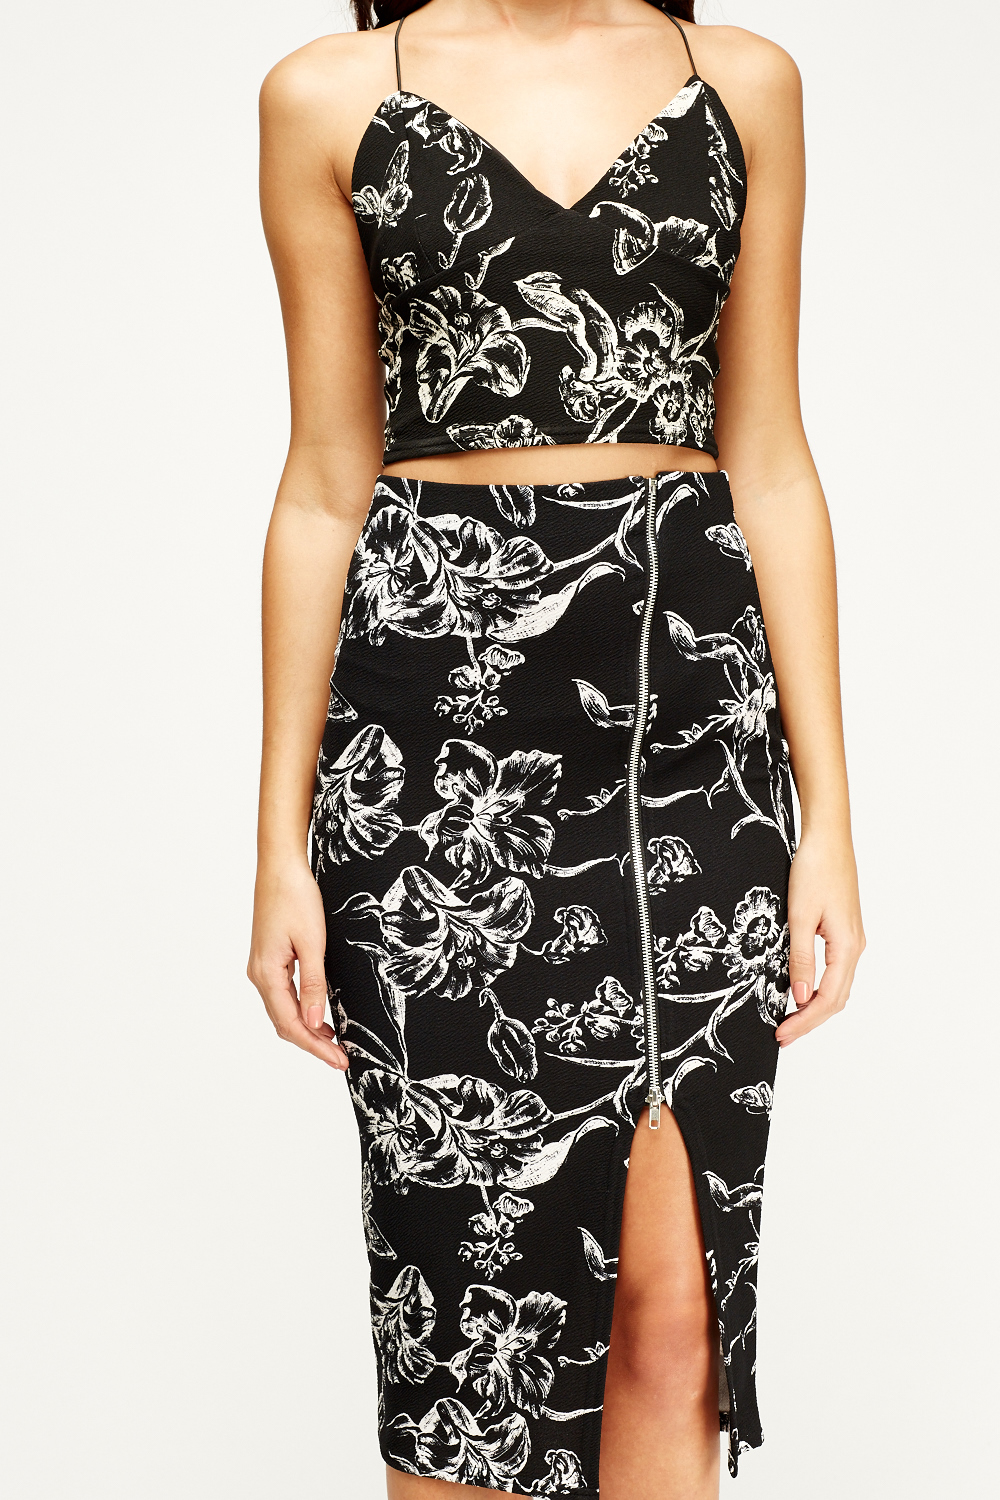 Floral Crop Top And Skirt Set - Just £5